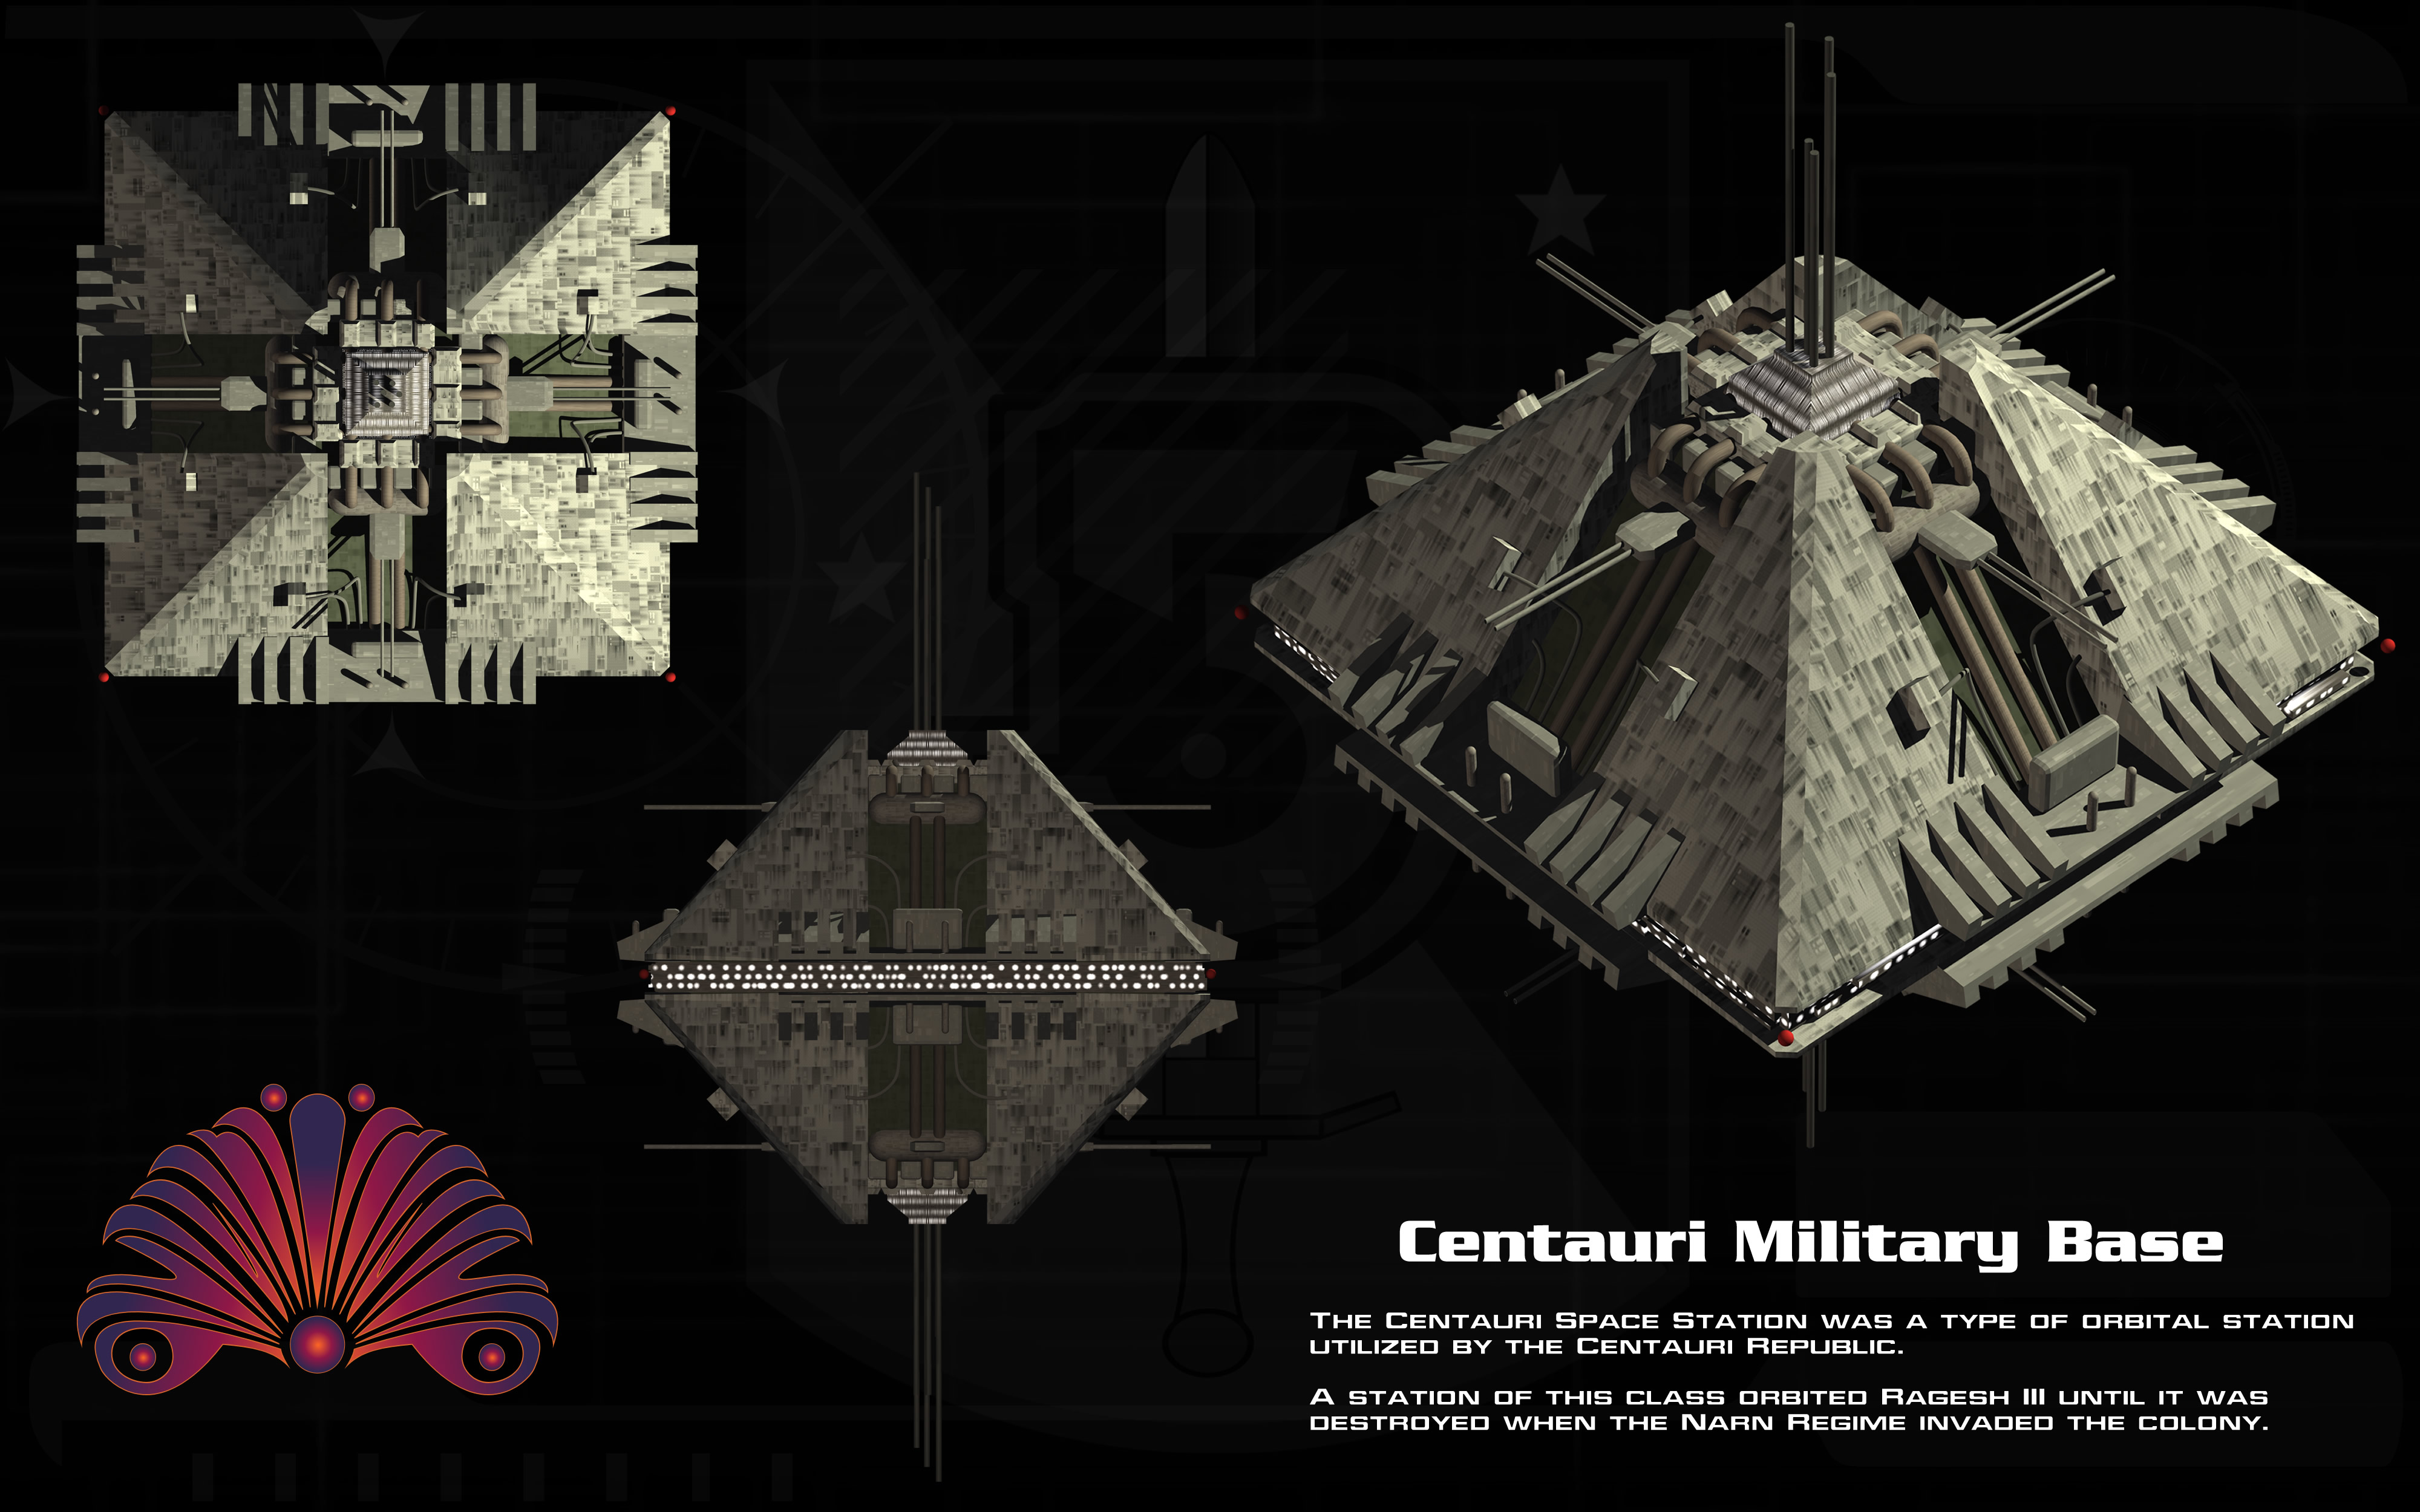 Centauri Military Base ortho by unusualsuspex